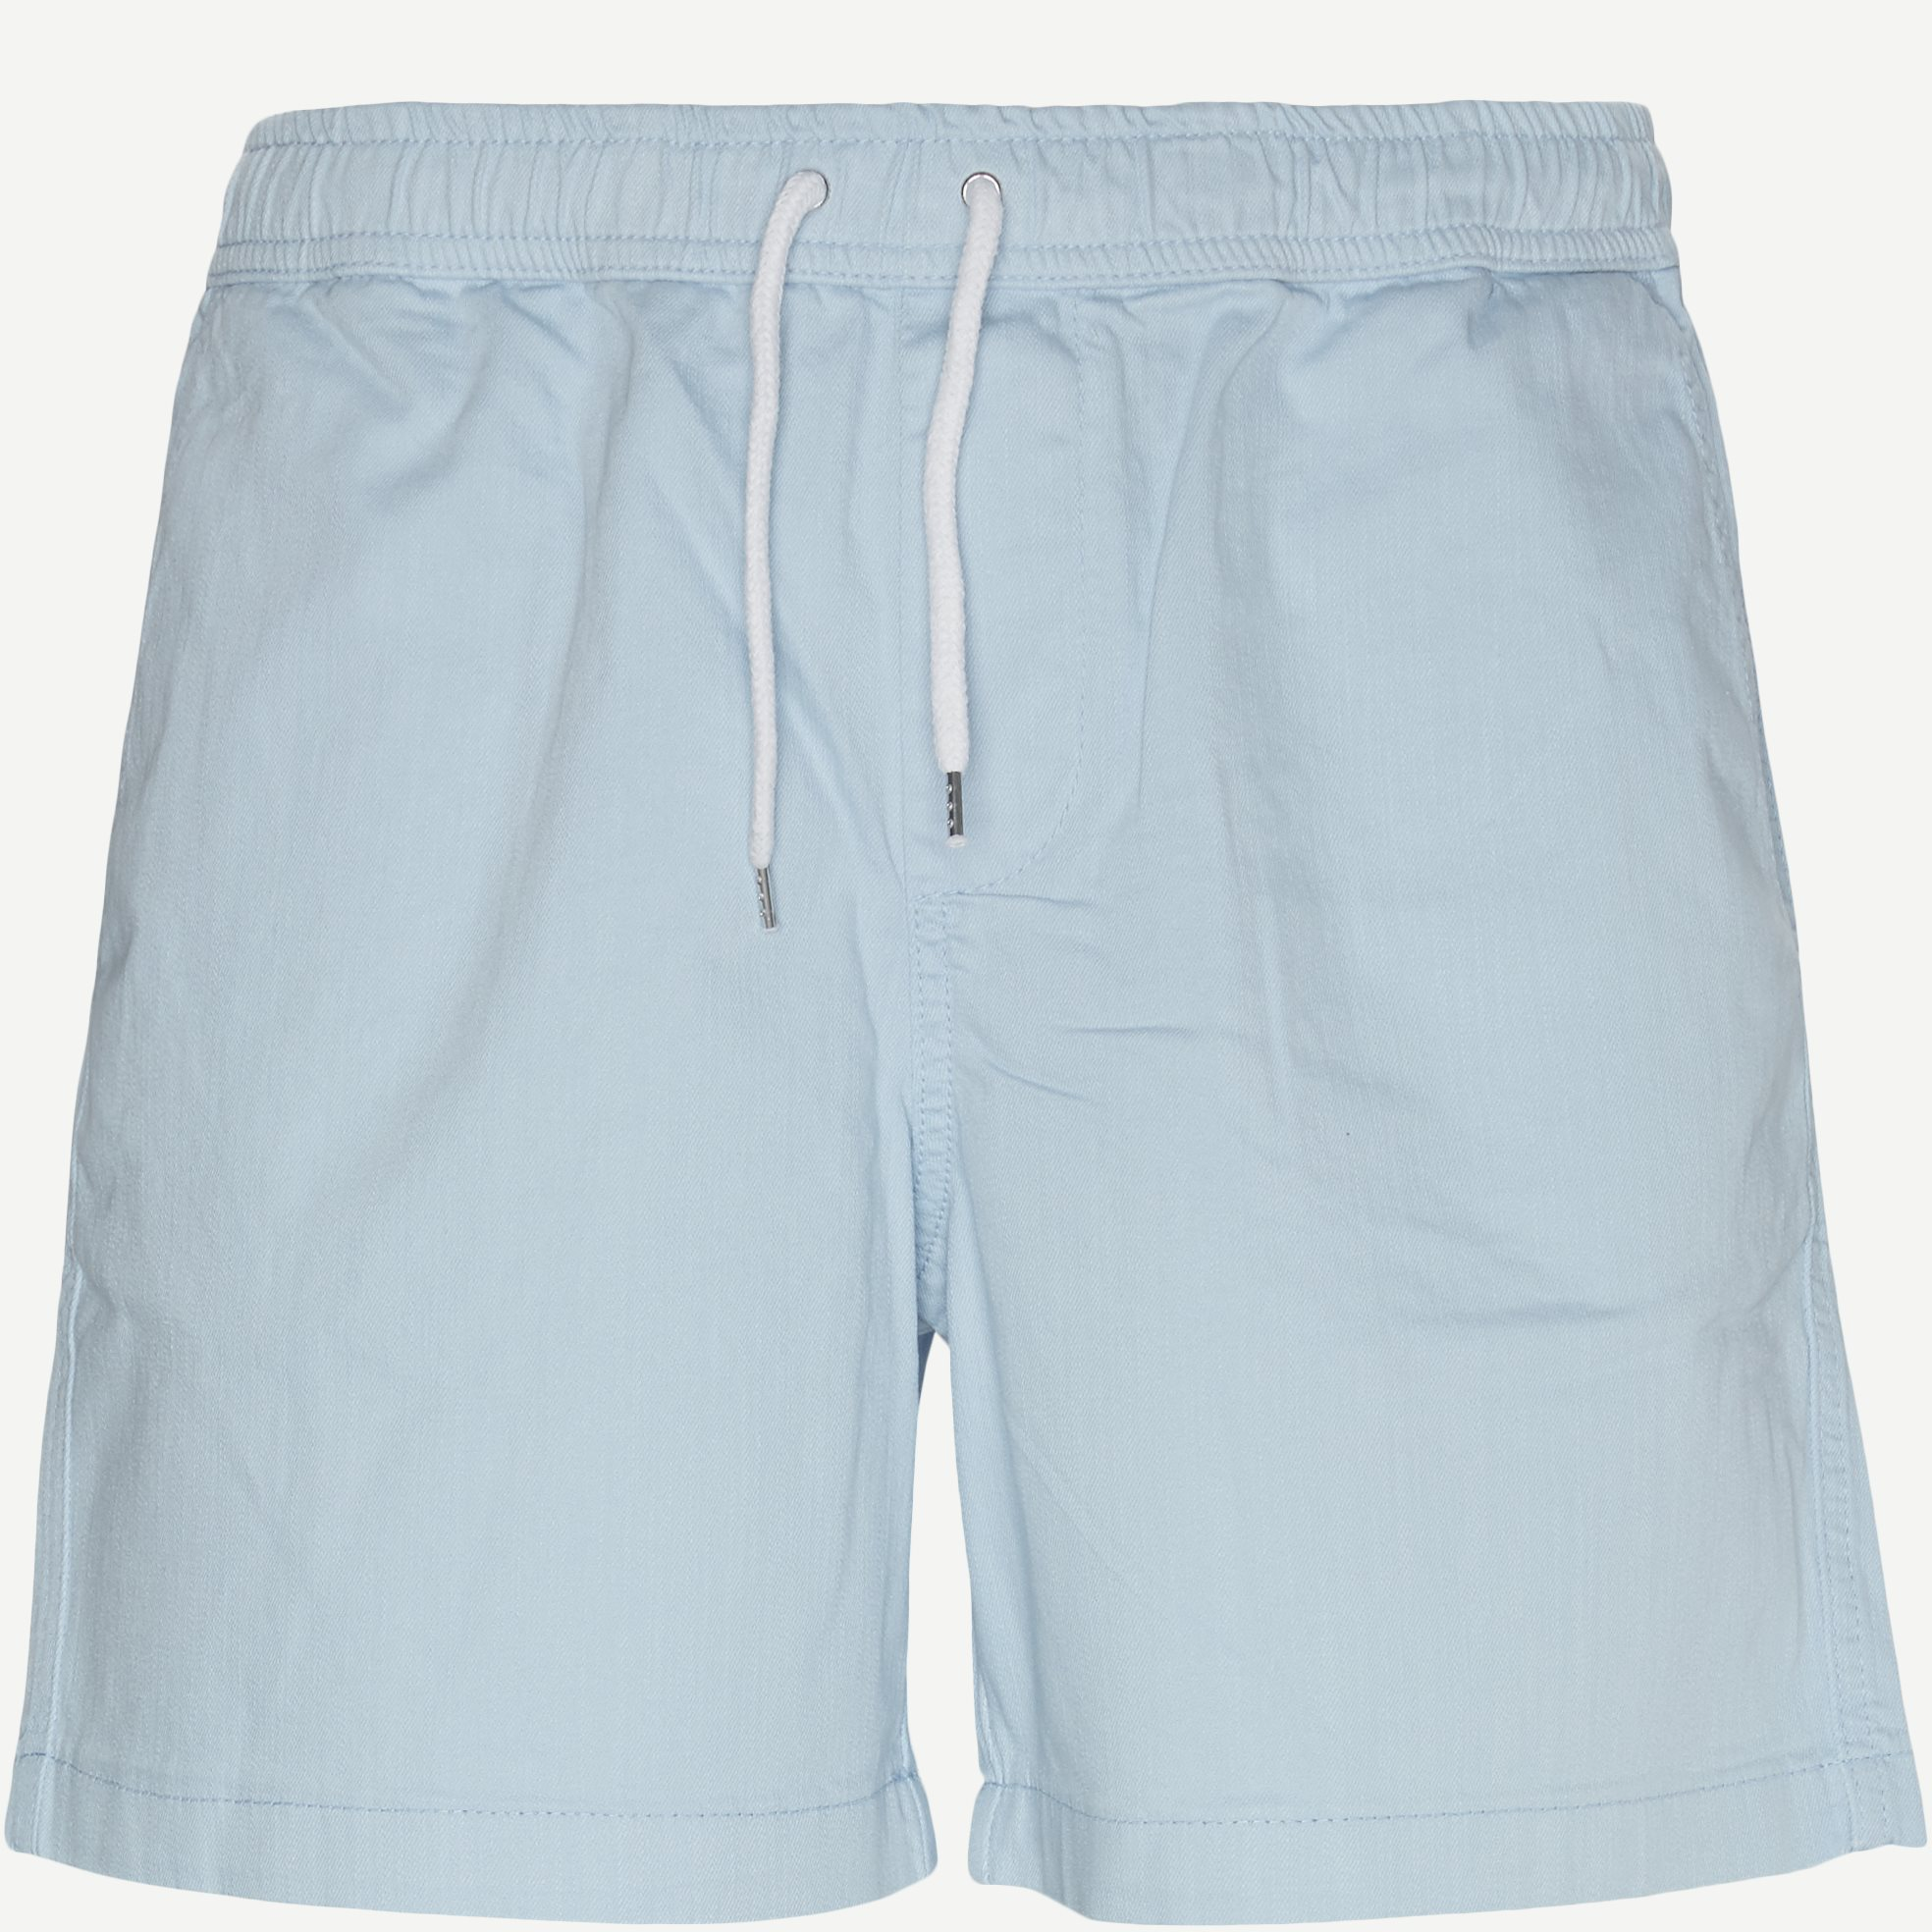 Gregor Shorts - Shorts - Regular - Blå